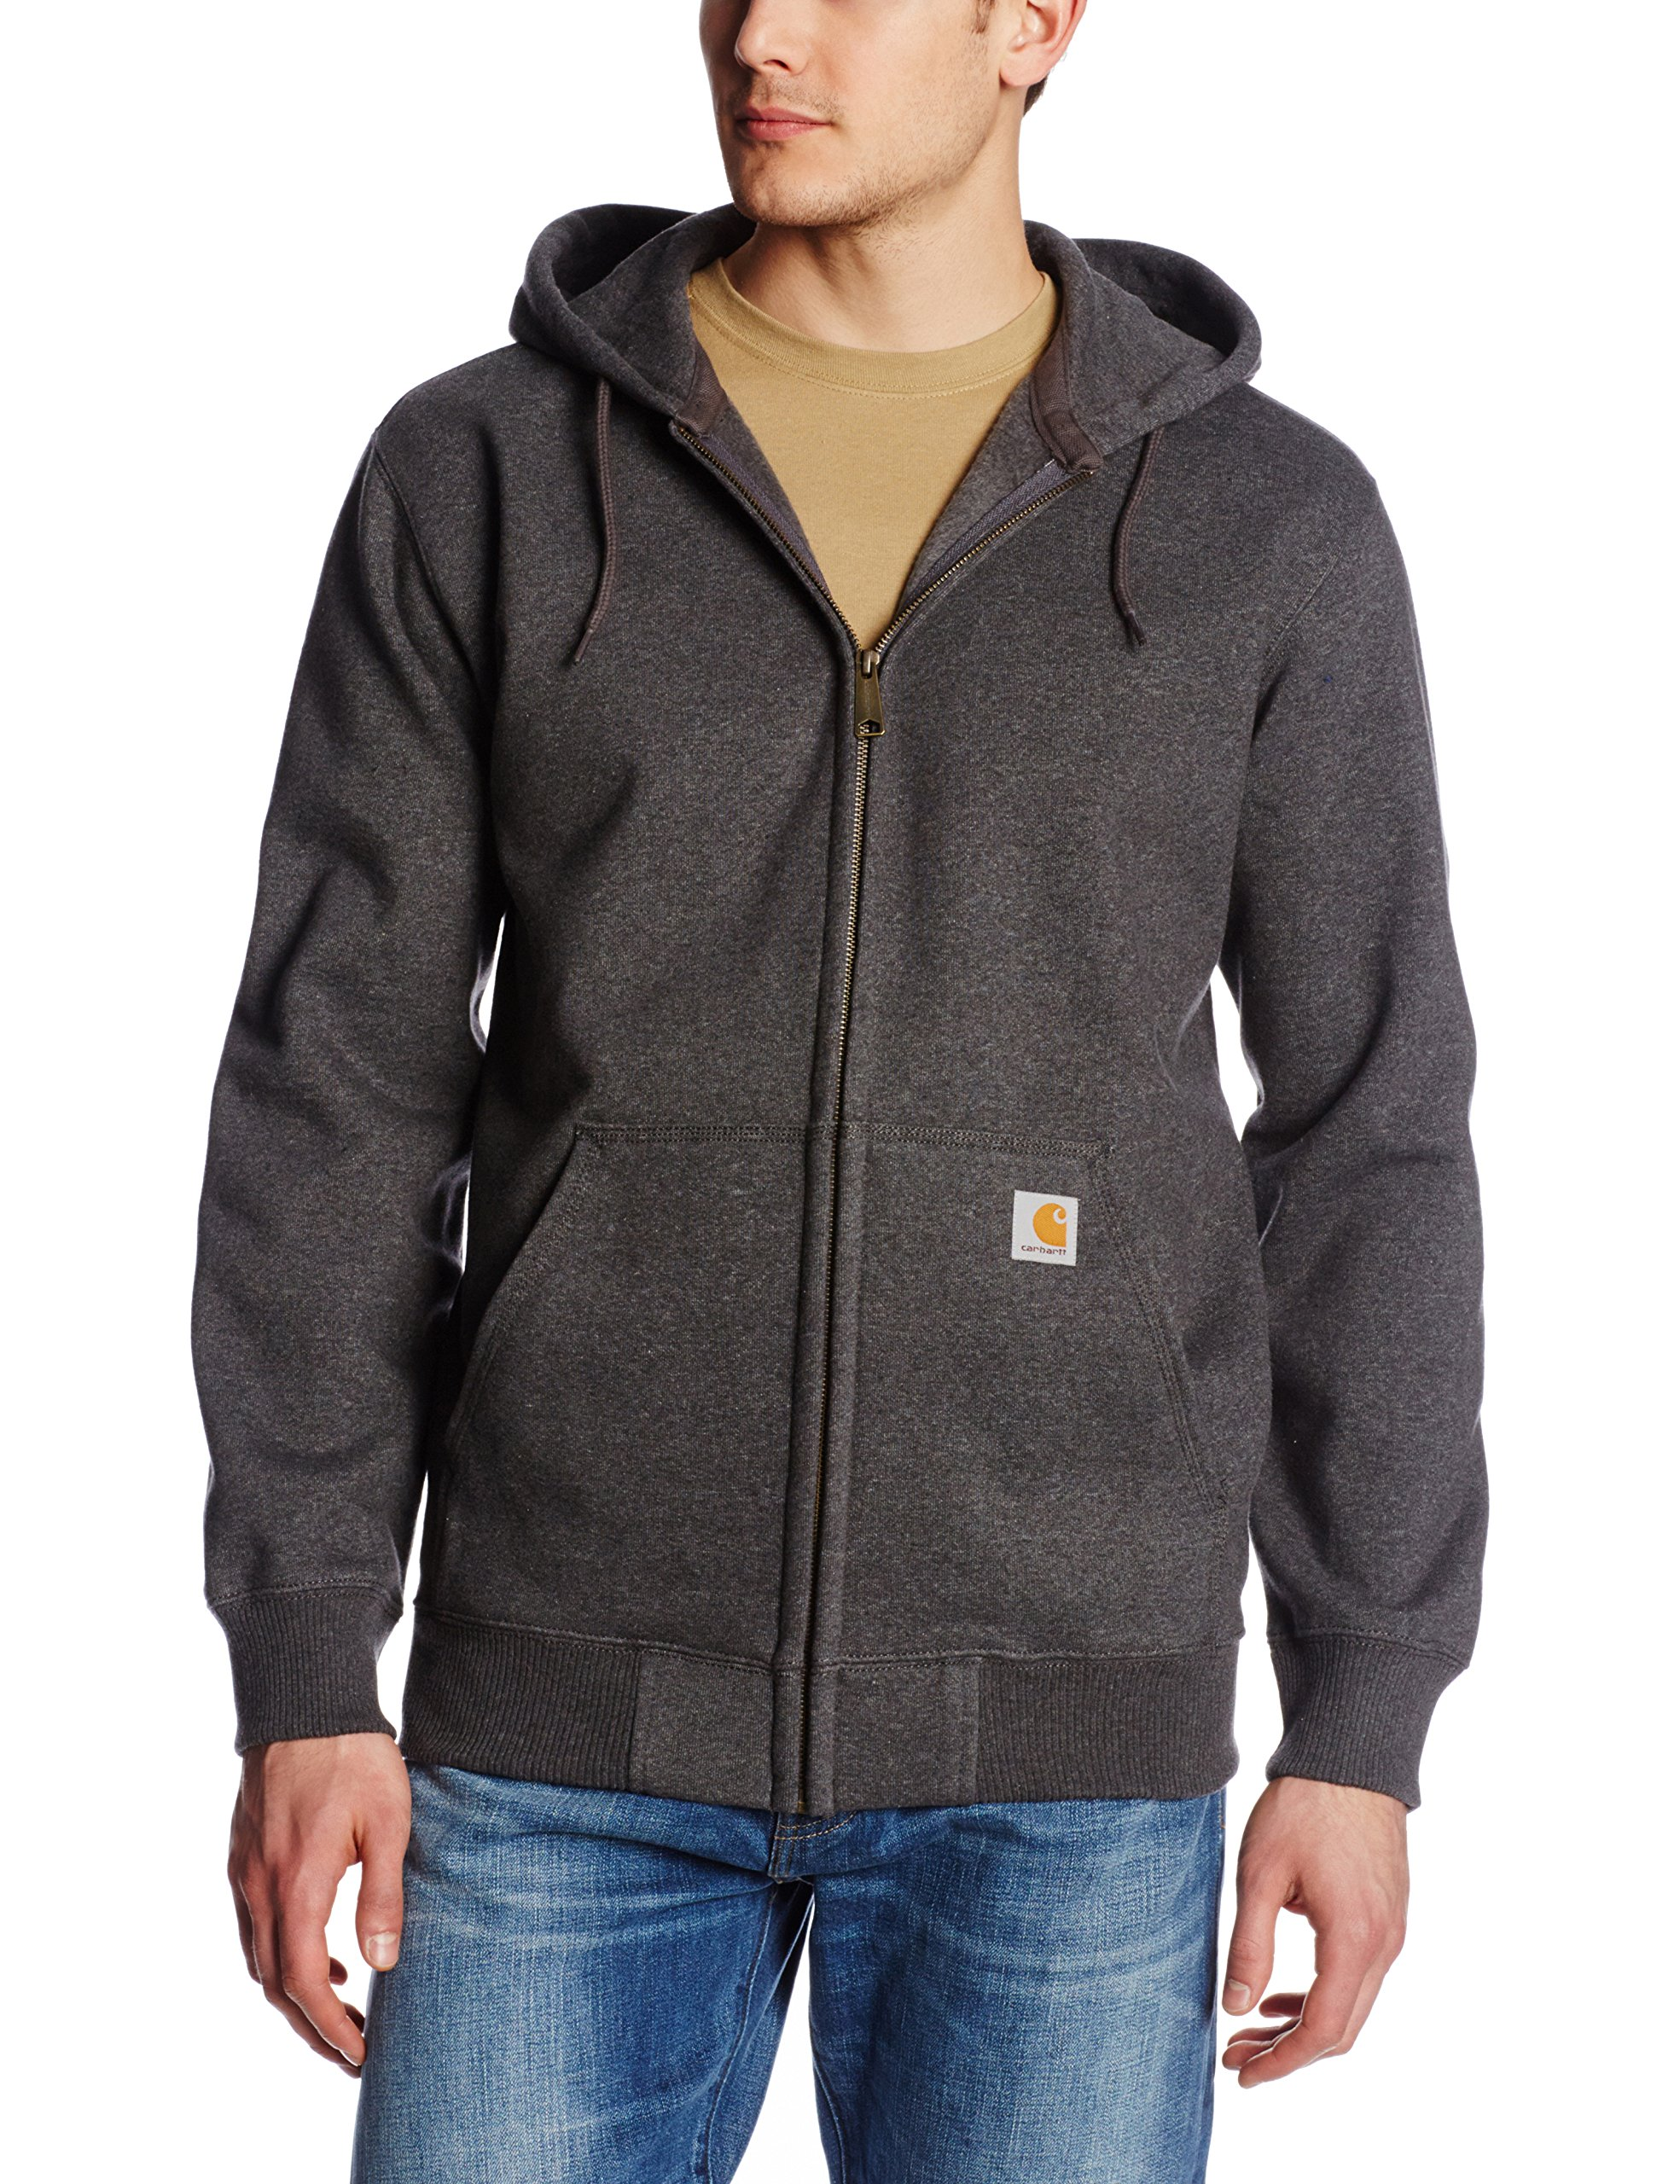 Carhartt Men's Rain Defender Paxton Heavyweight Hooded Sweatshirt, Carbon Heather, X-Large by Carhartt